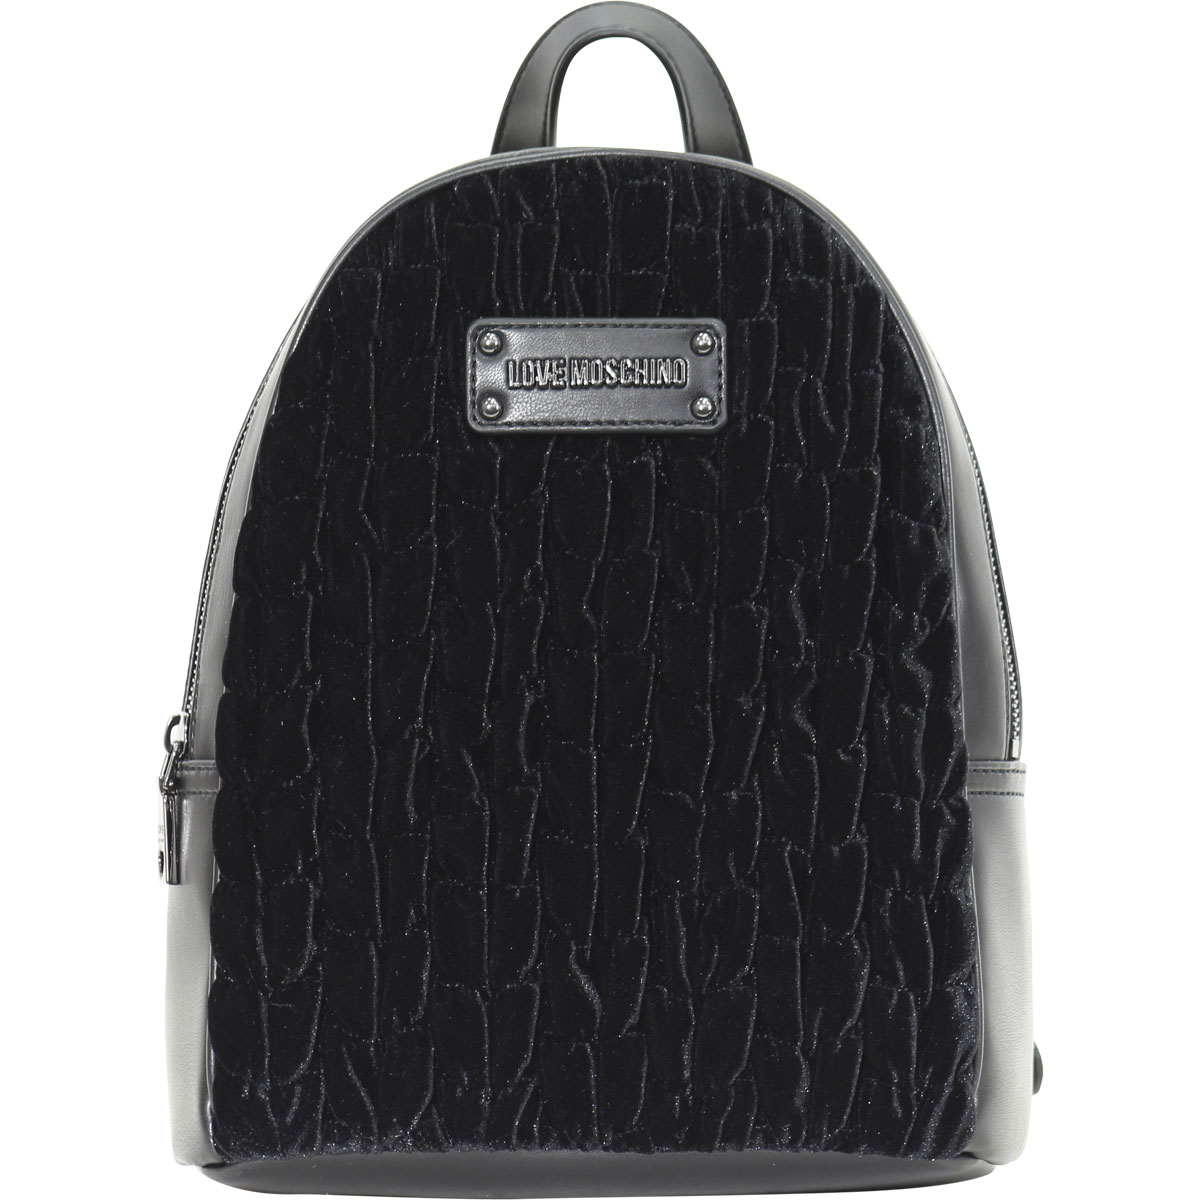 49194910d8 Details about Love Moschino Women s Black Gathered Velvet Backpack Bag